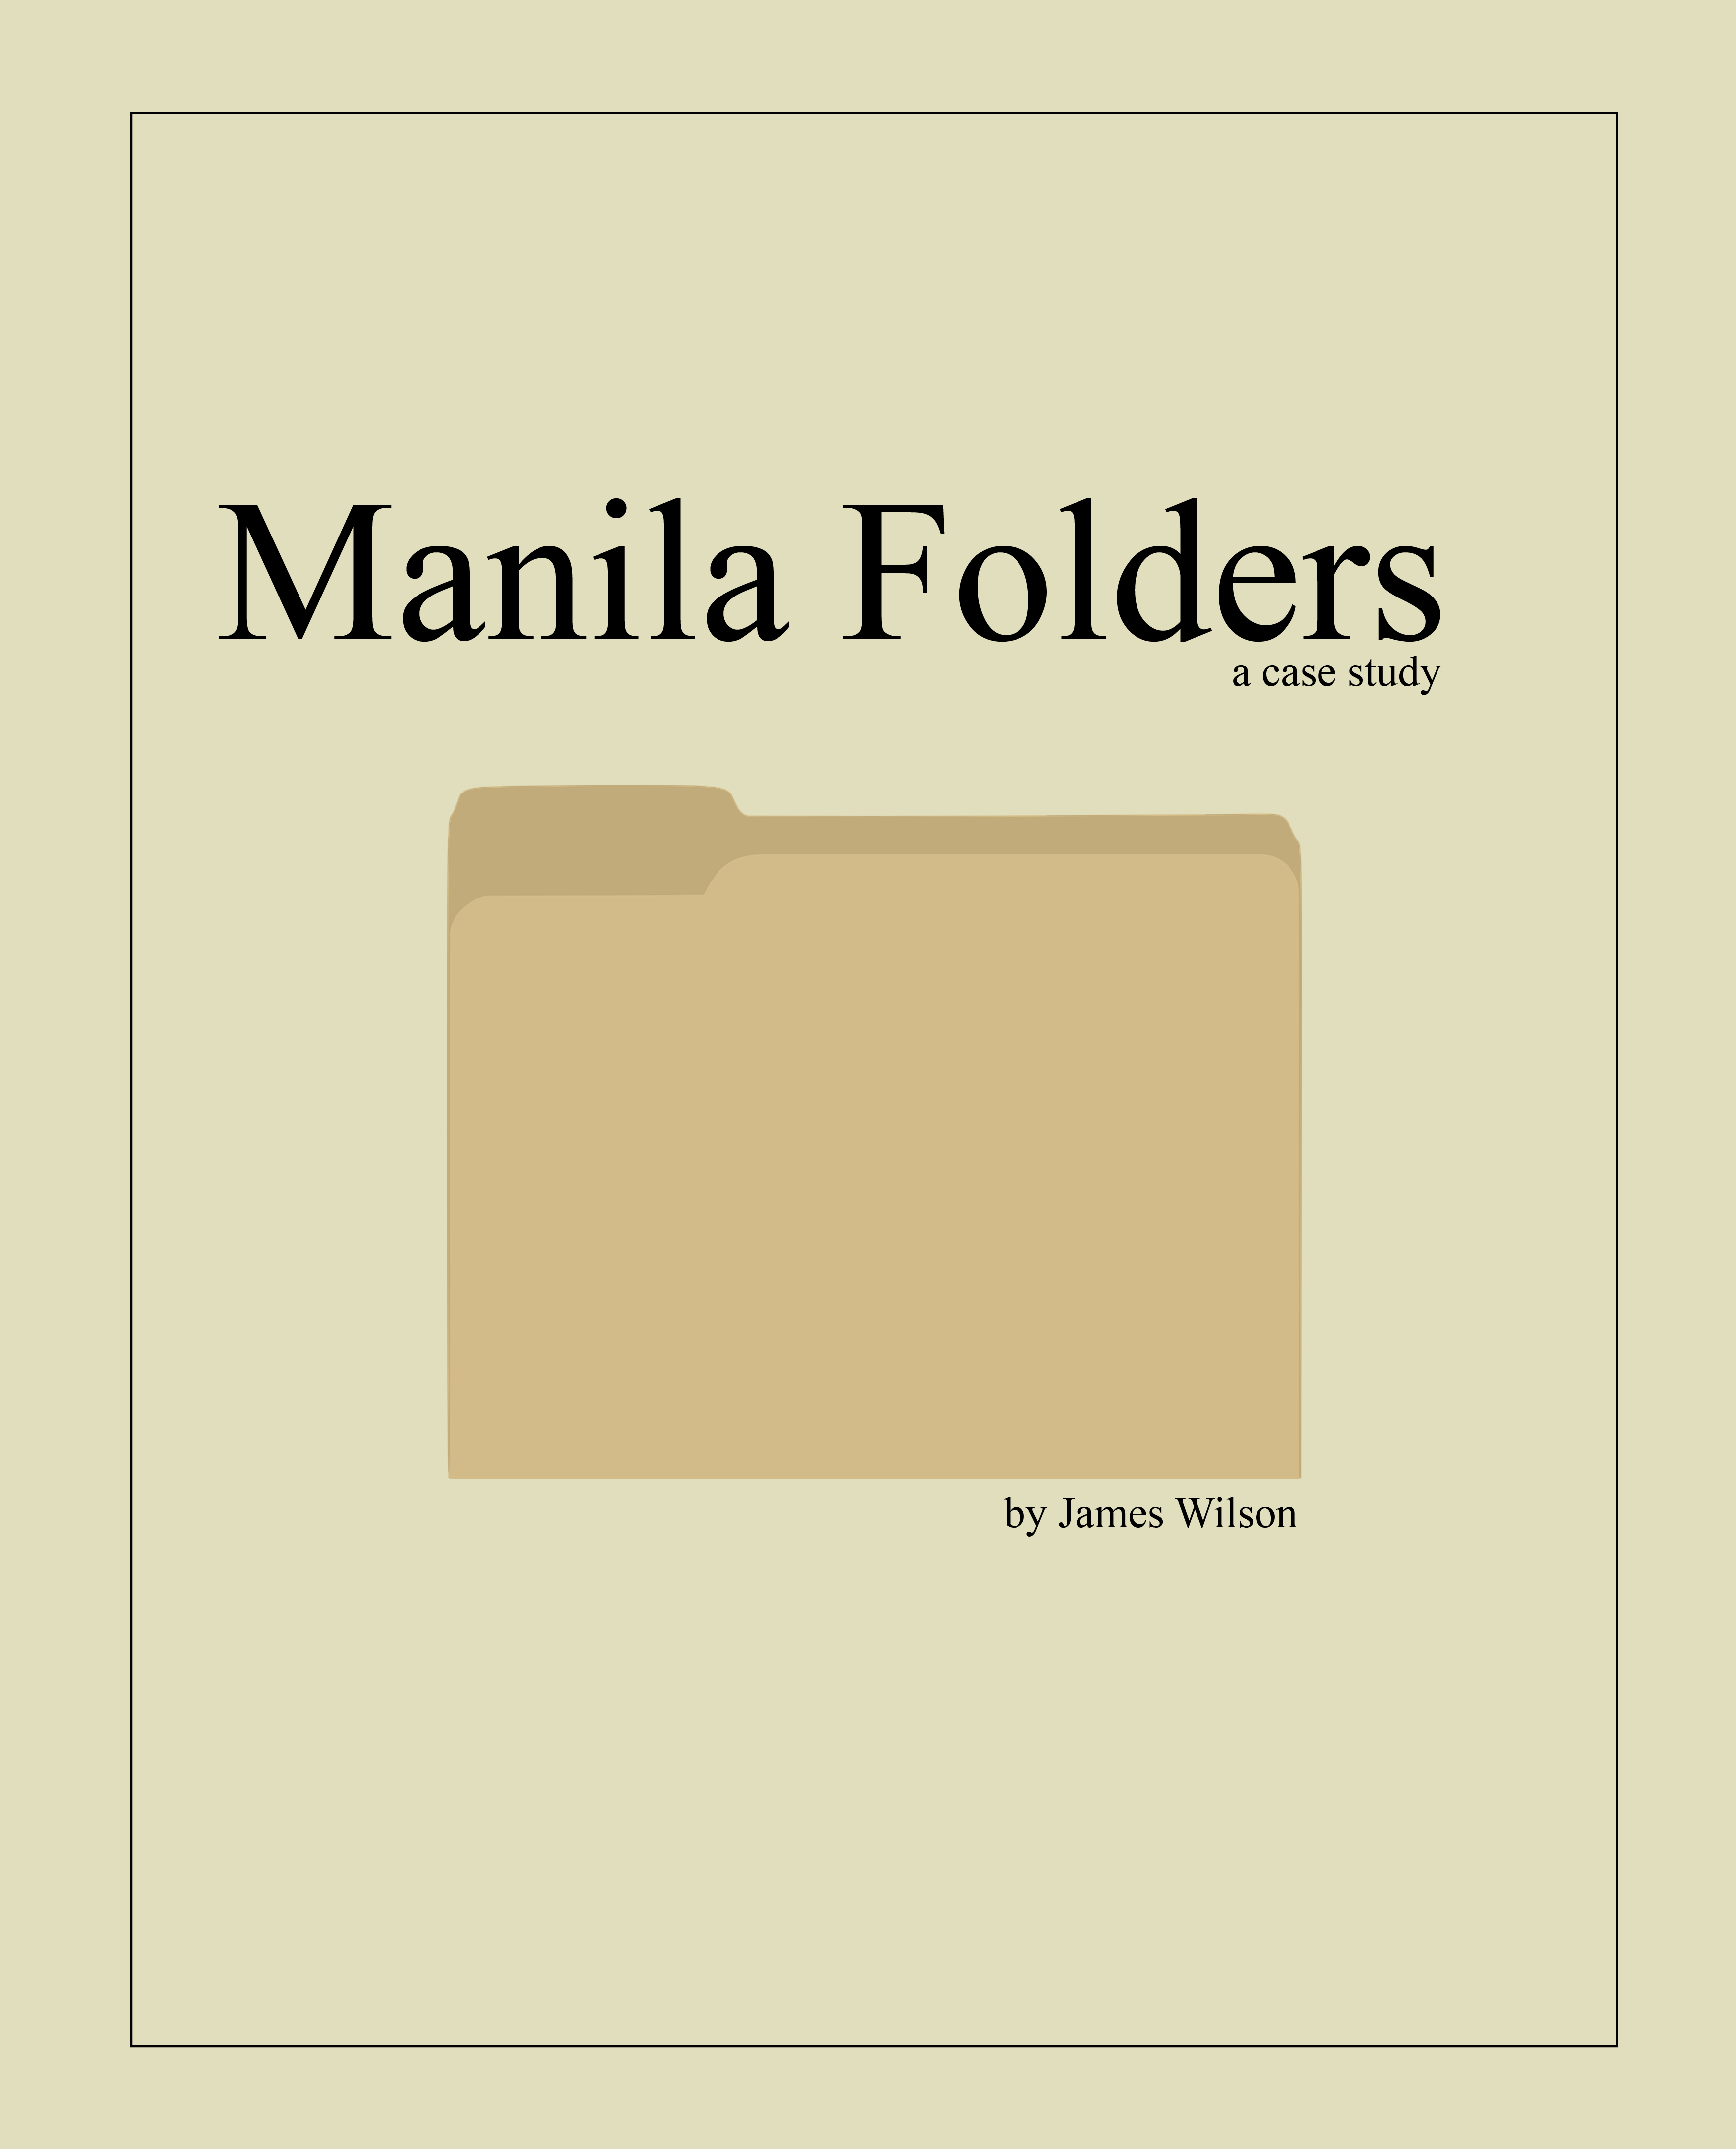 Pin By Chris Foley On Survey Of Design 1 Morning Nmd 111 2017 Case Study Cards Against Humanity Manila Folder